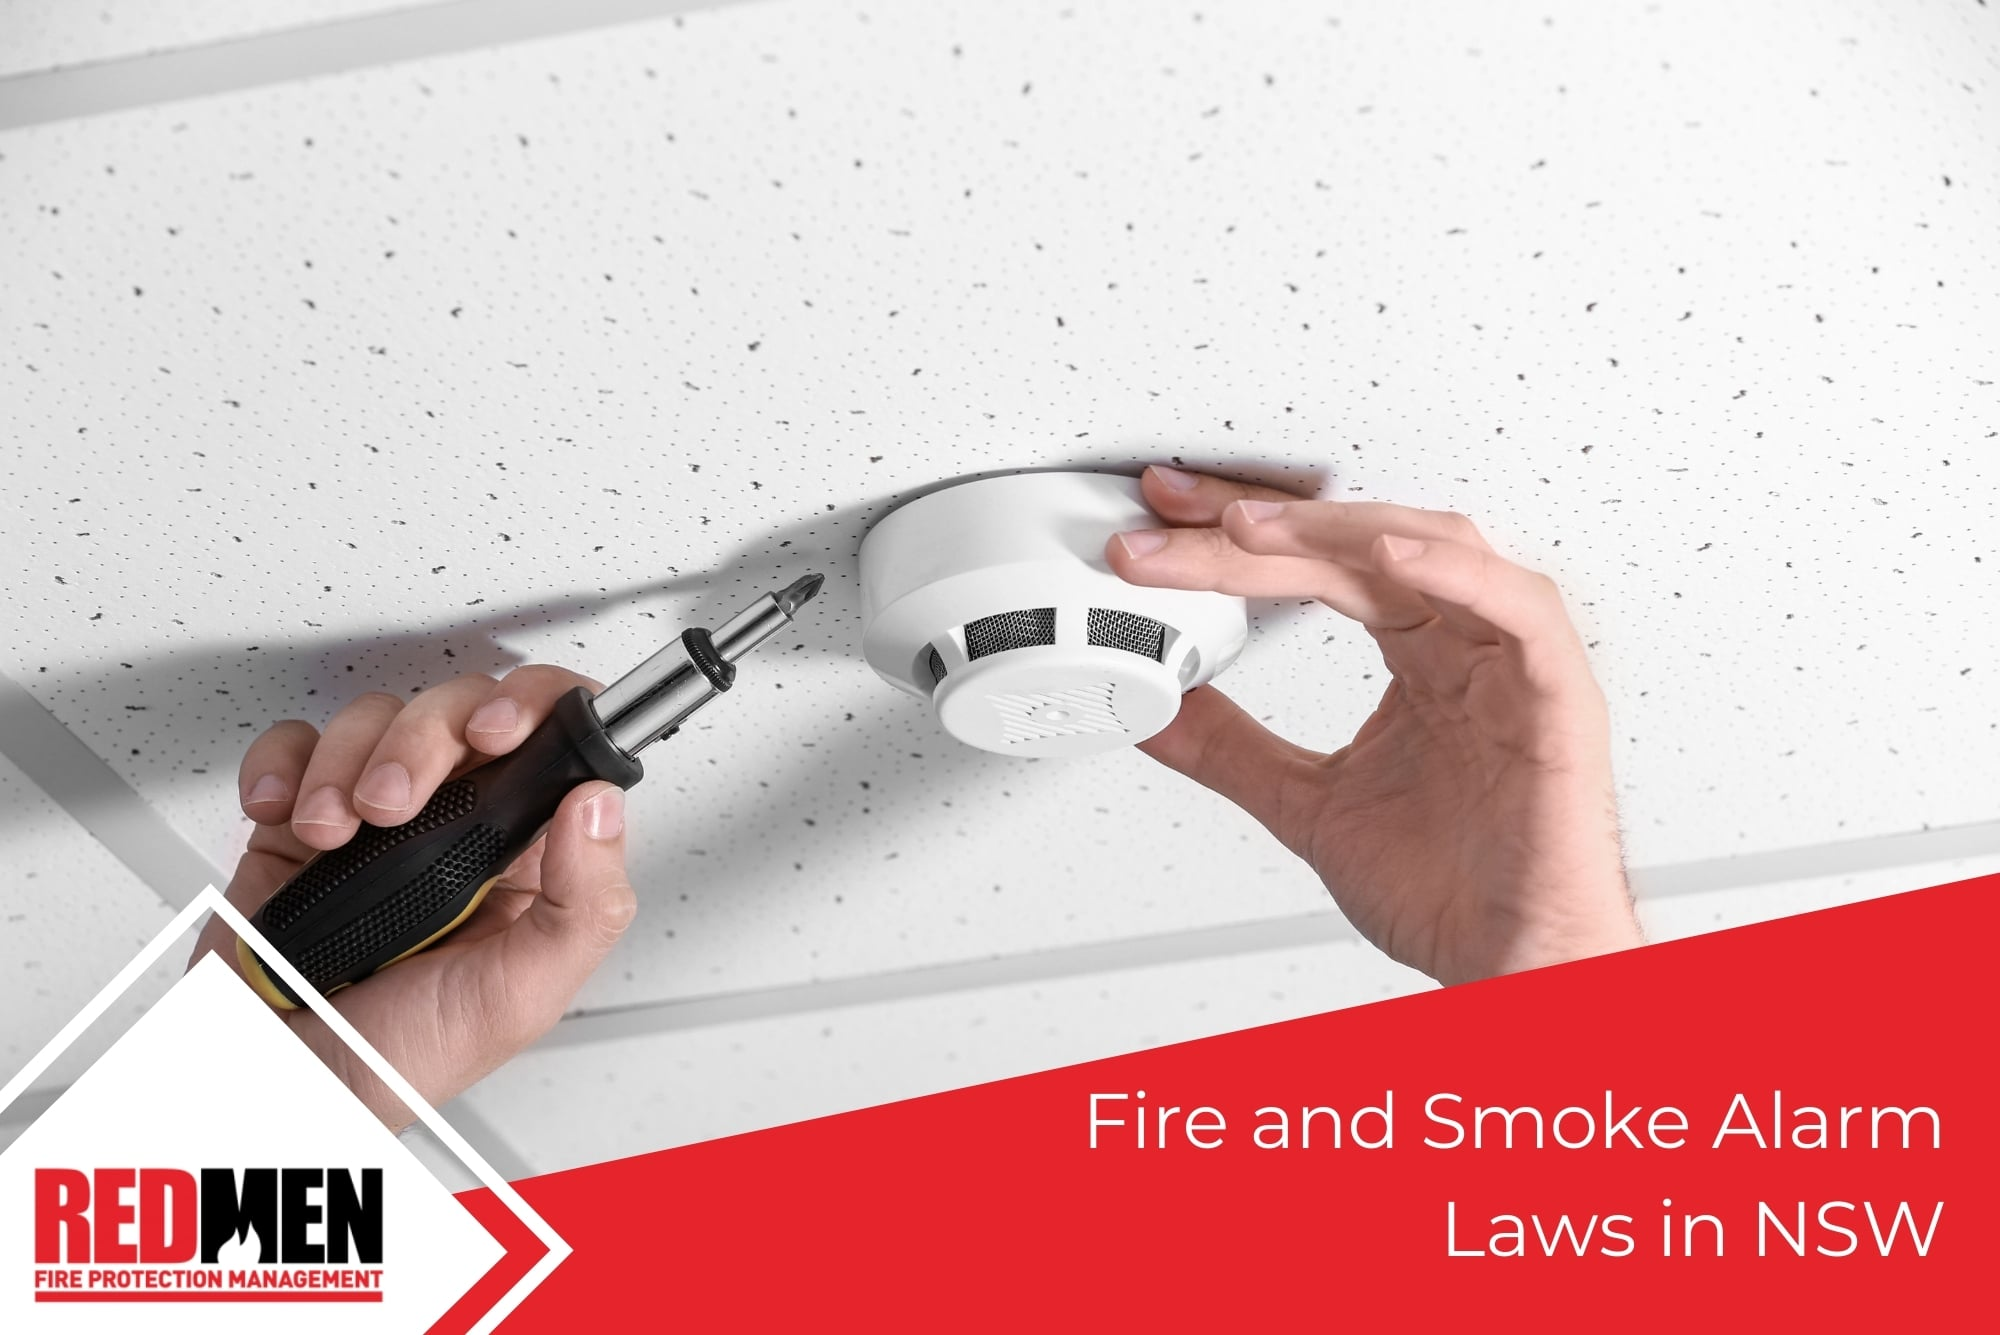 Fire and Smoke Alarm Laws in NSW